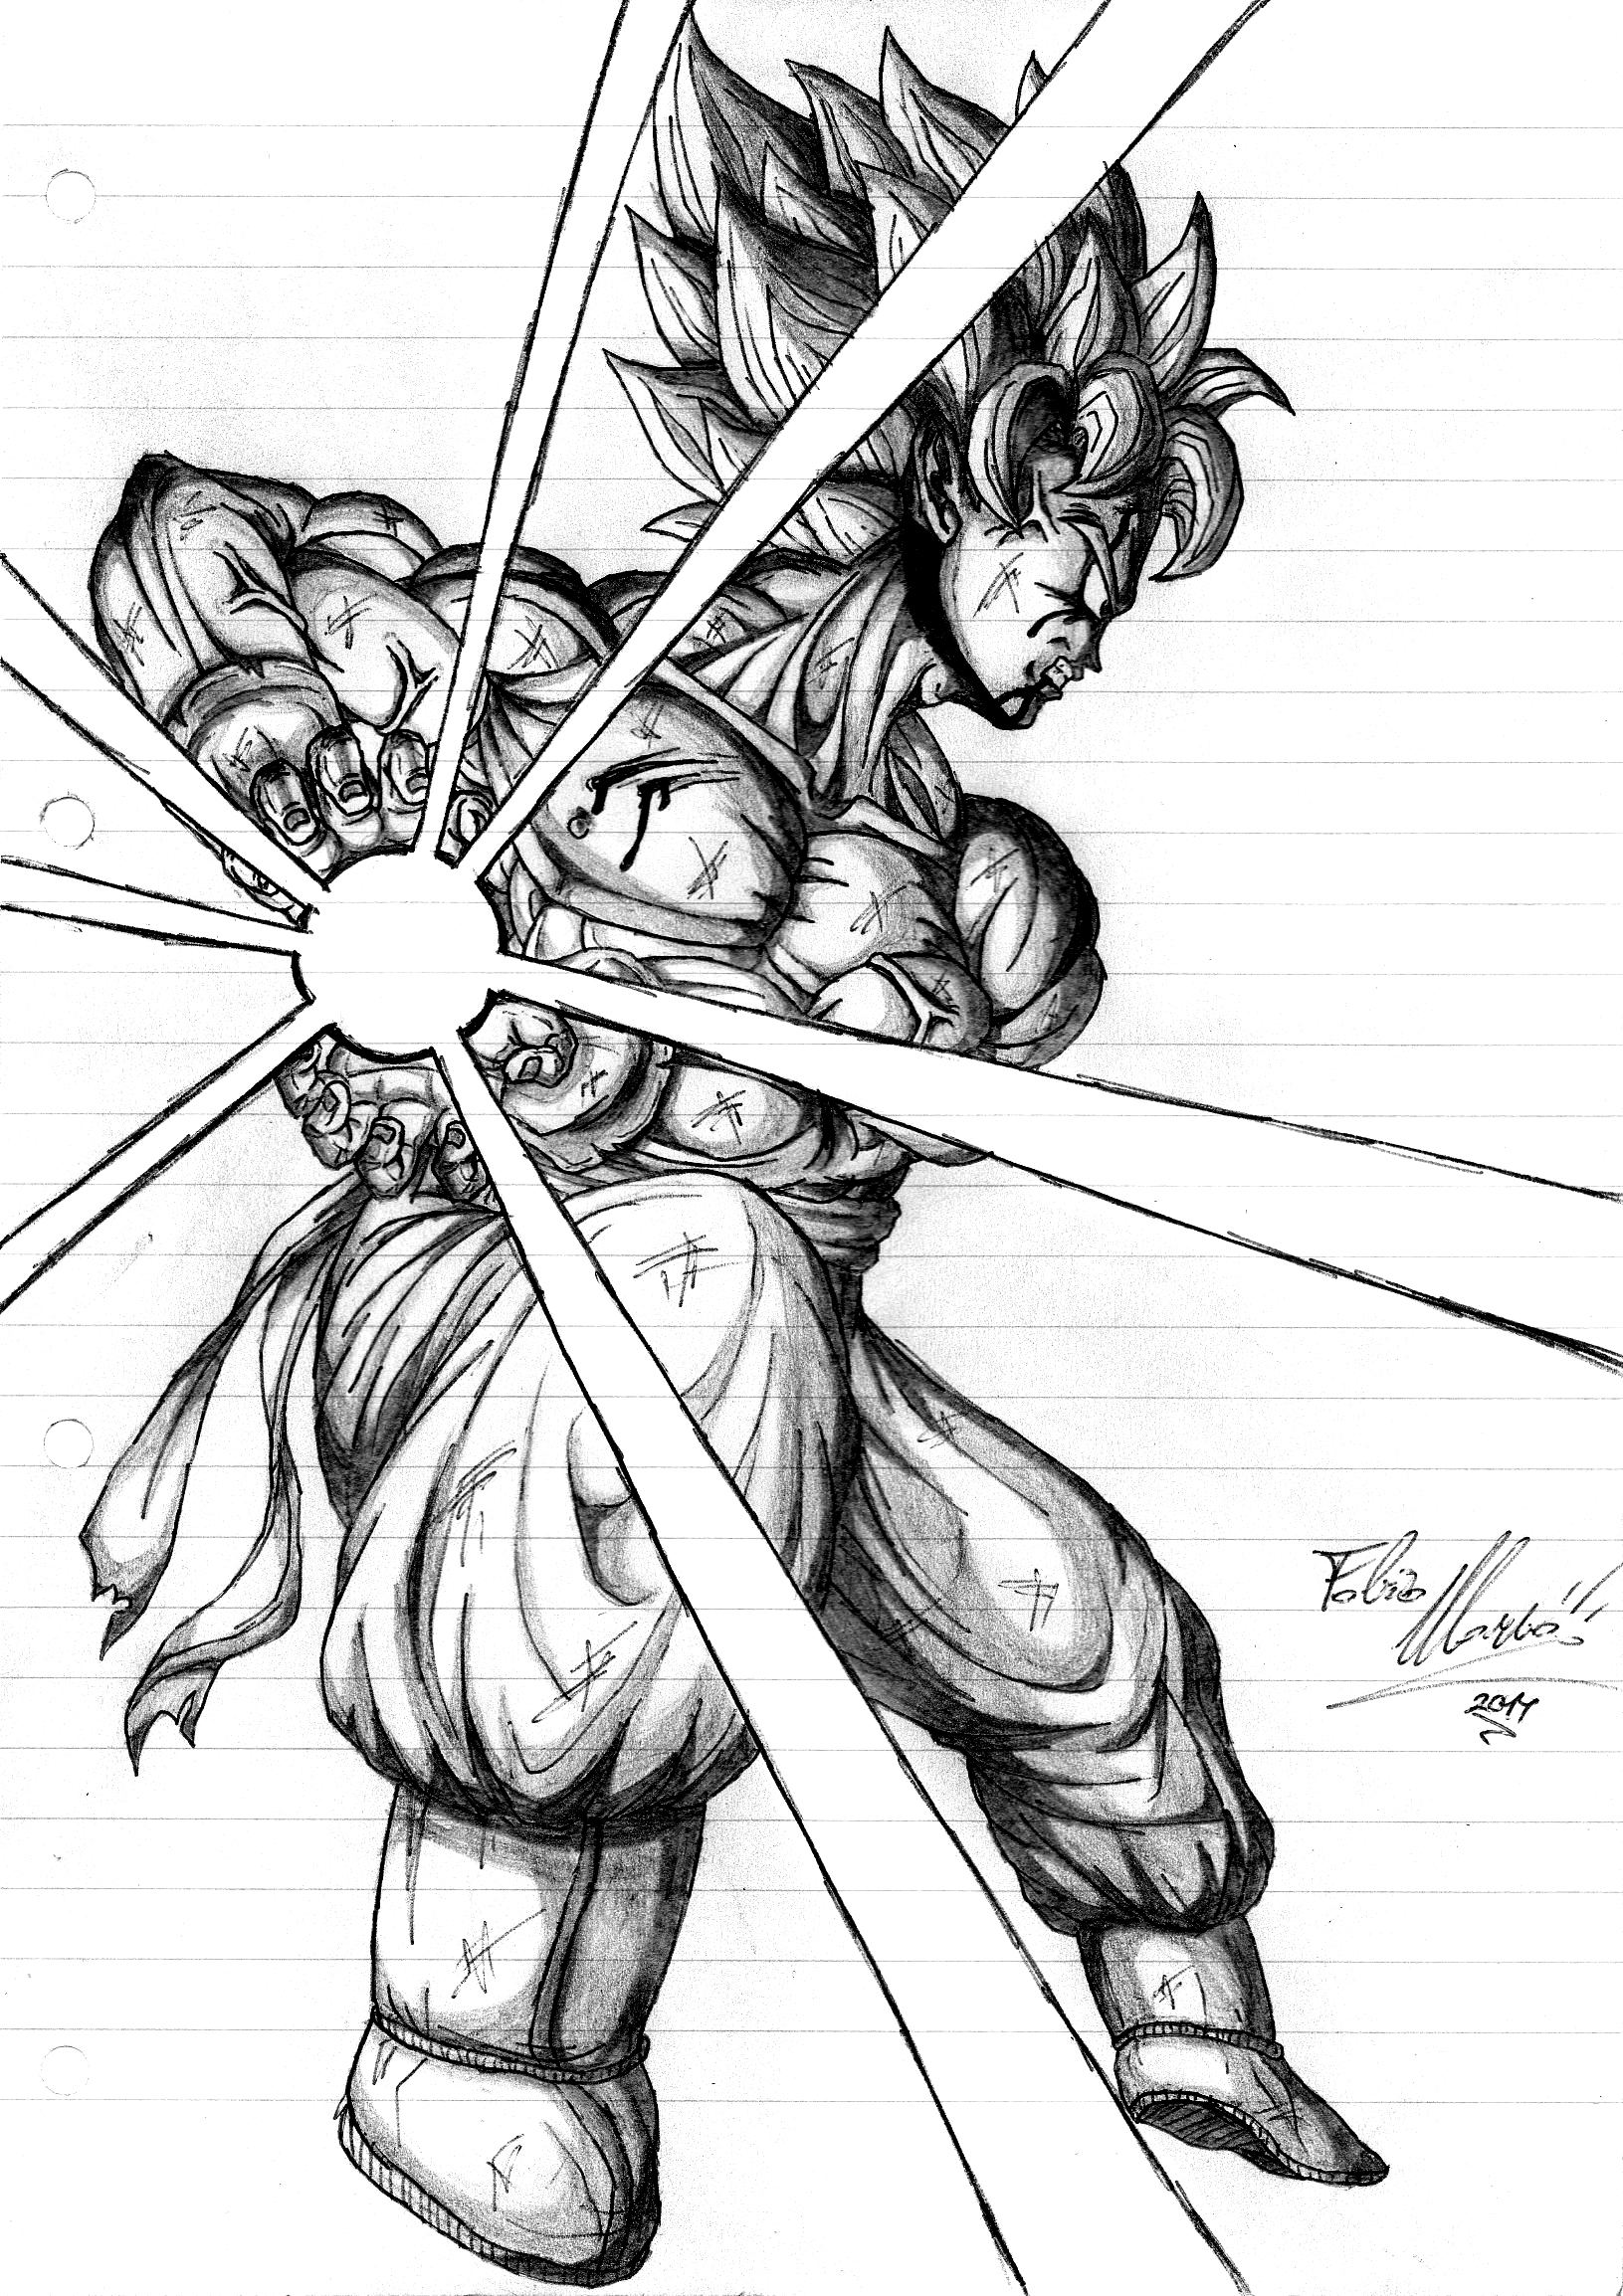 Goku SSJ Kamehameha Black Biro by SigmaGFX on DeviantArt